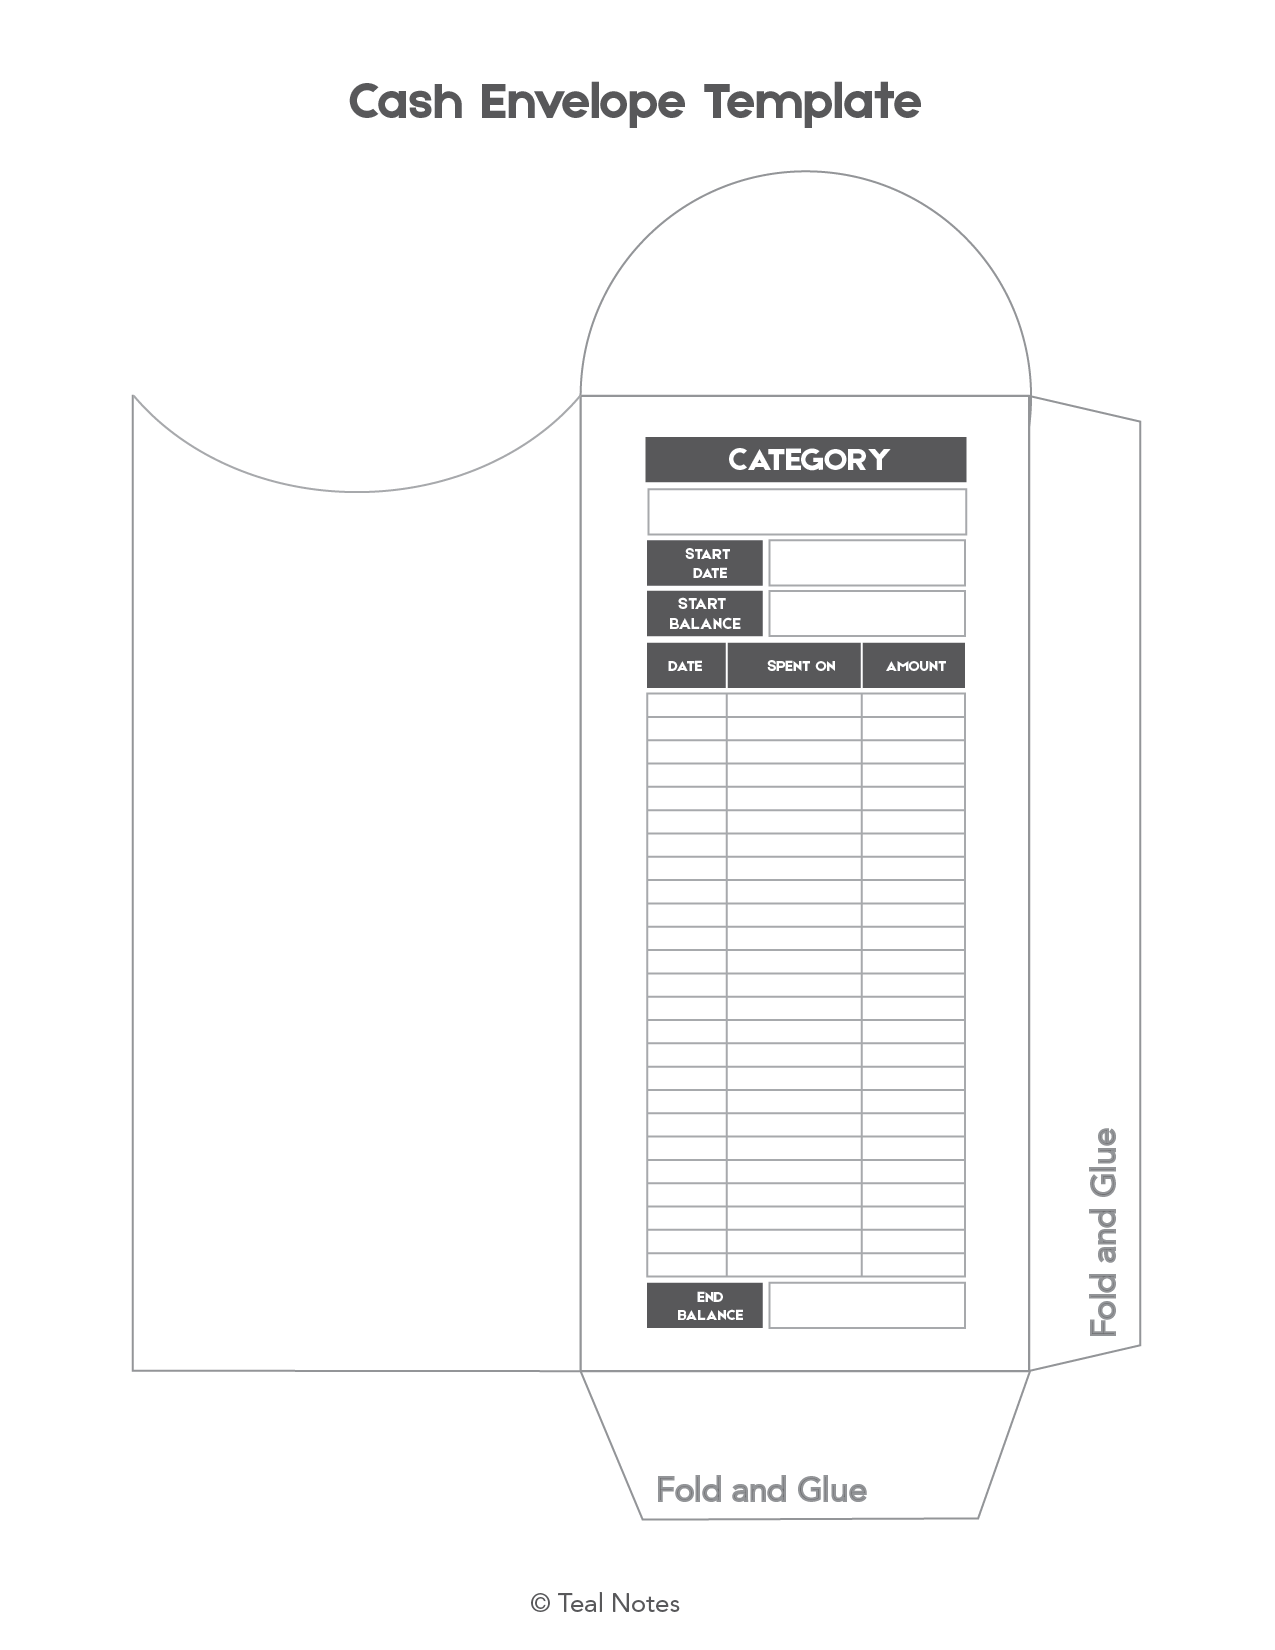 Free Cash Envelope Template This Is How You Use A Cash Budgeting Envelope To Stay Organized Cash Envelopes Budget Envelopes Money Envelope System